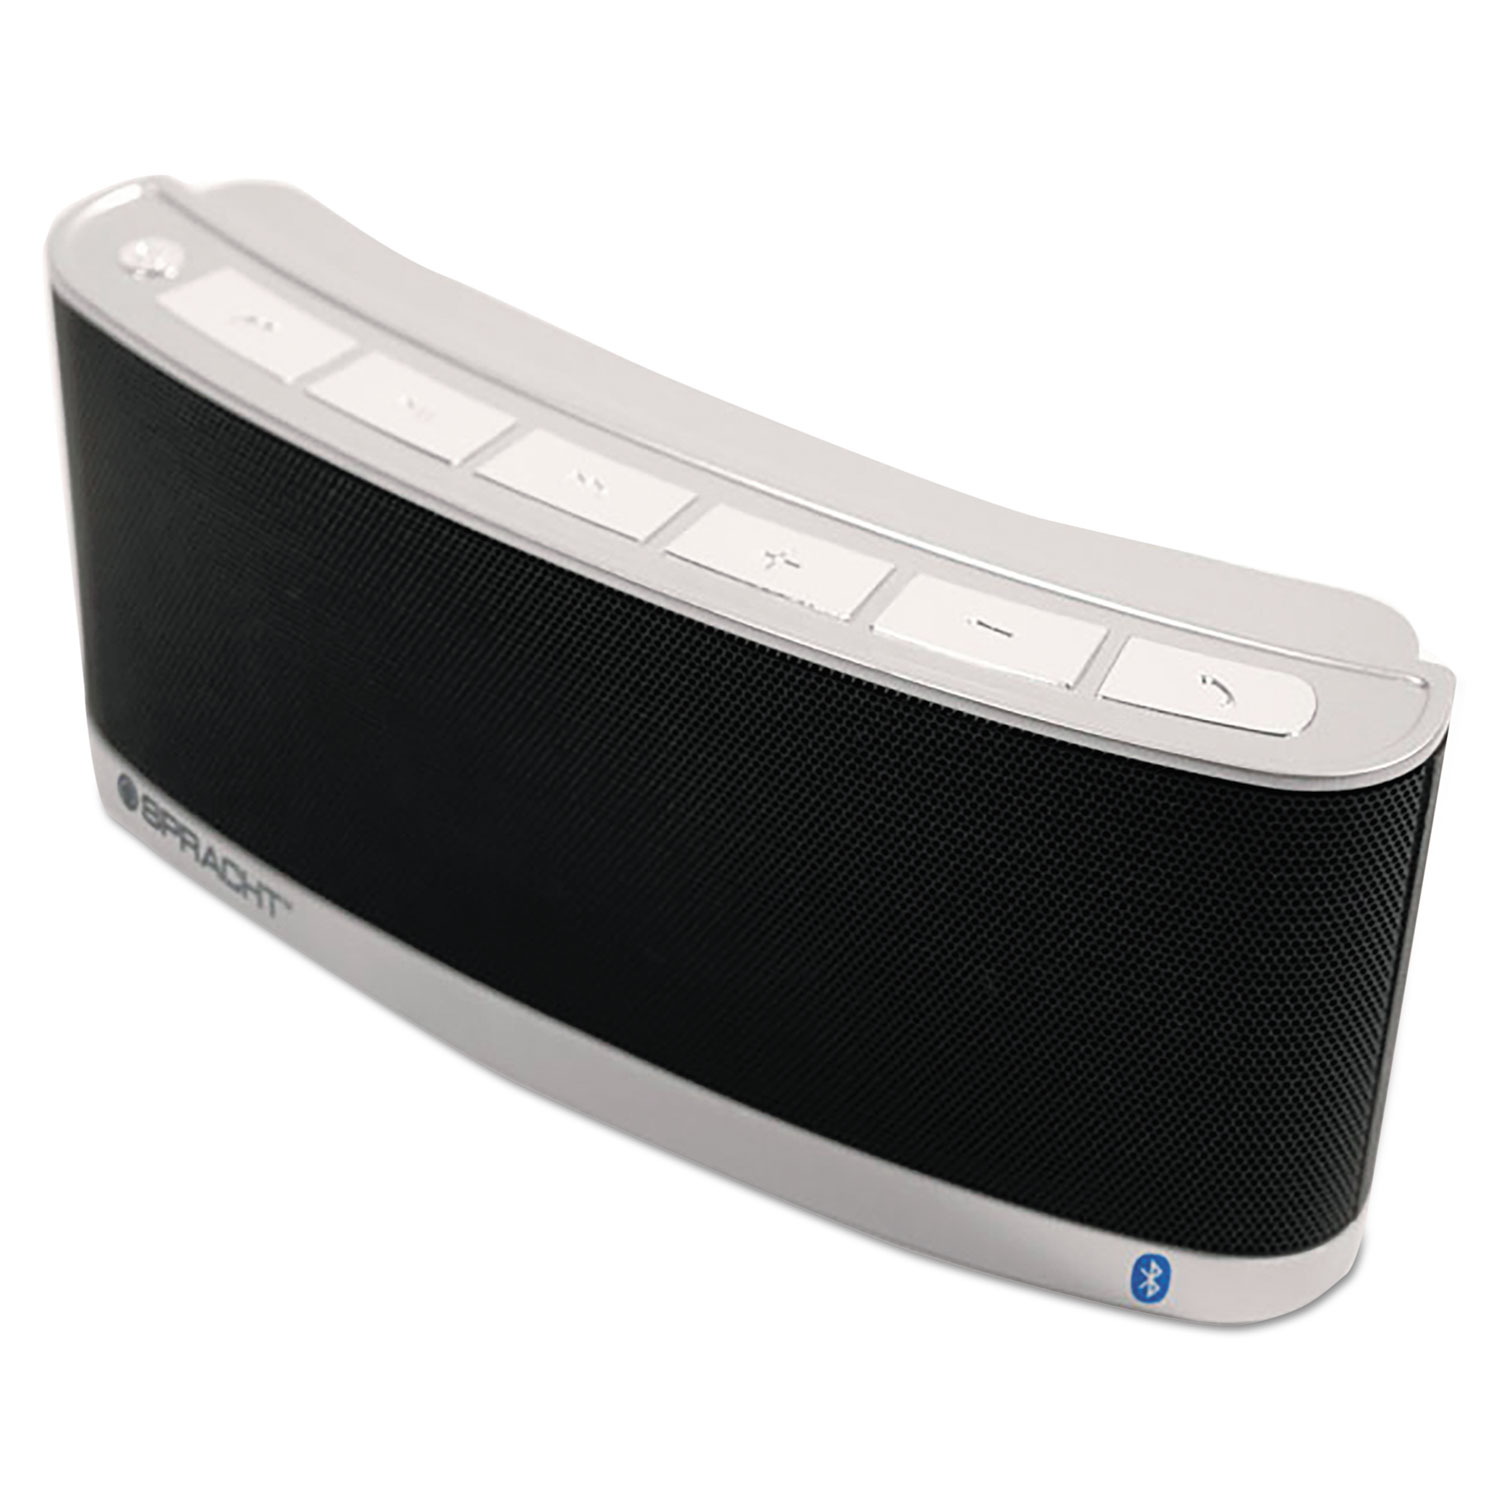 Blunote 2 Portable Wireless Bluetooth Speaker, Black/Silver